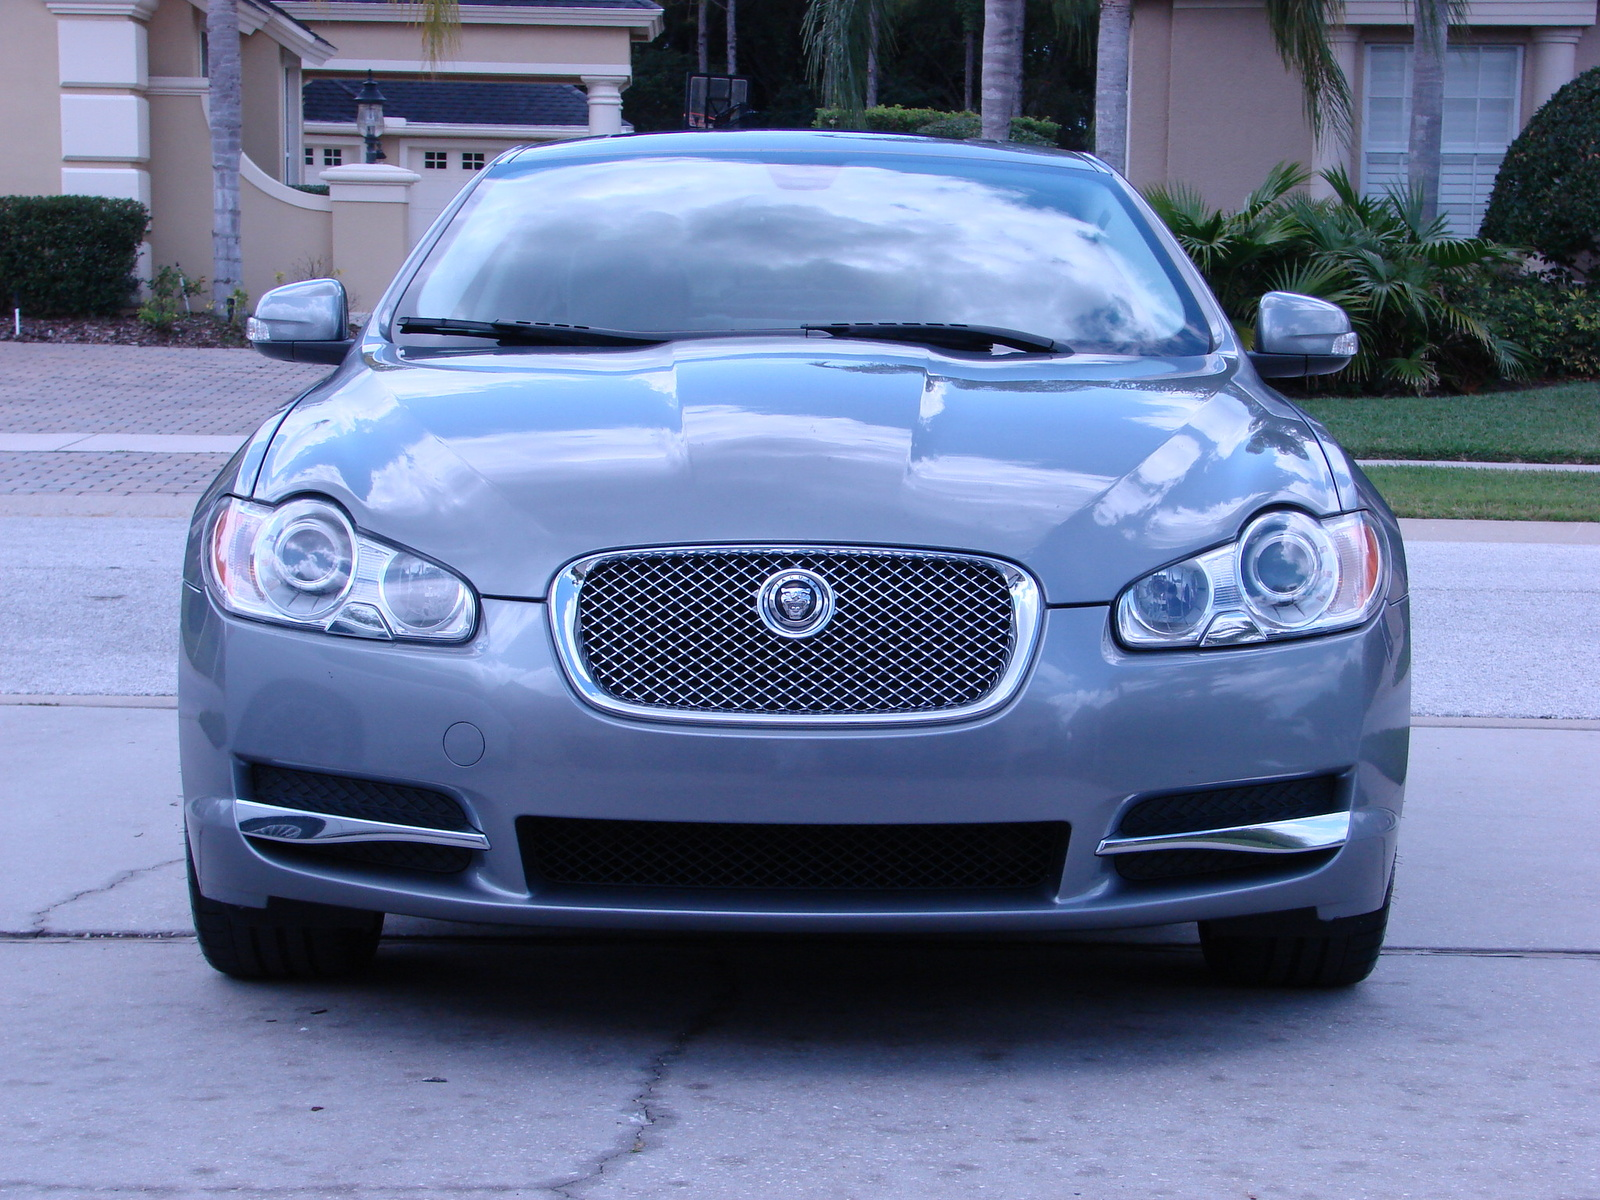 jaguar xf 2009 - photo #15